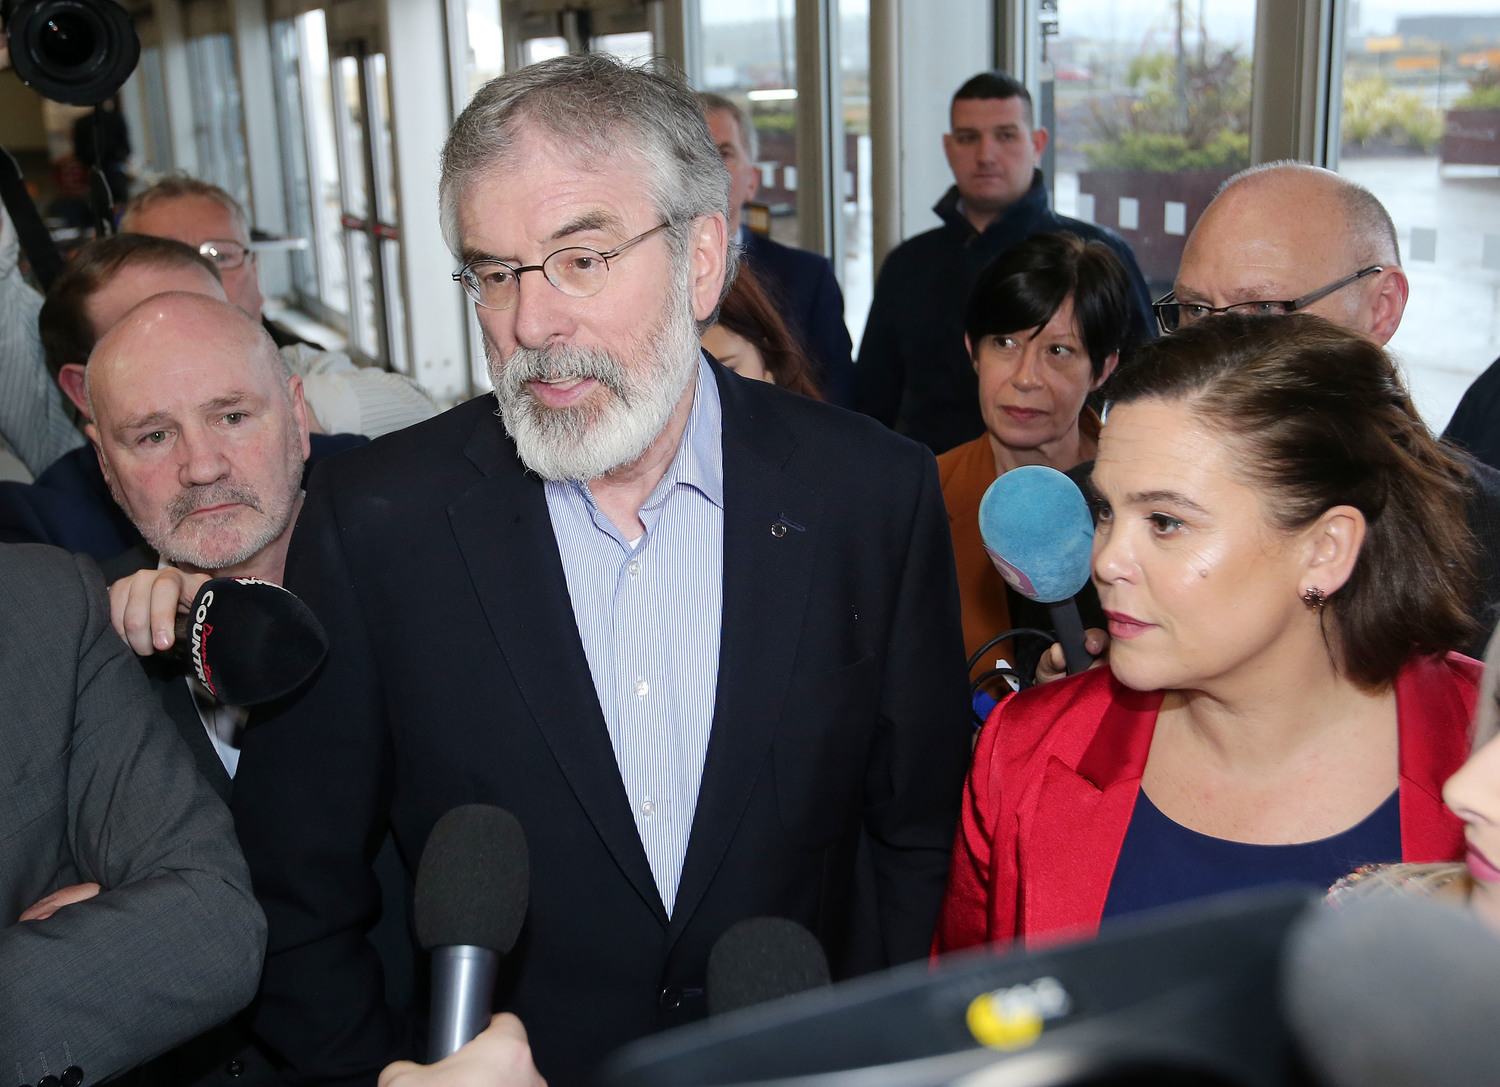 Sinn Féin president Gerry Adams and deputy leader Mary Lou McDonald